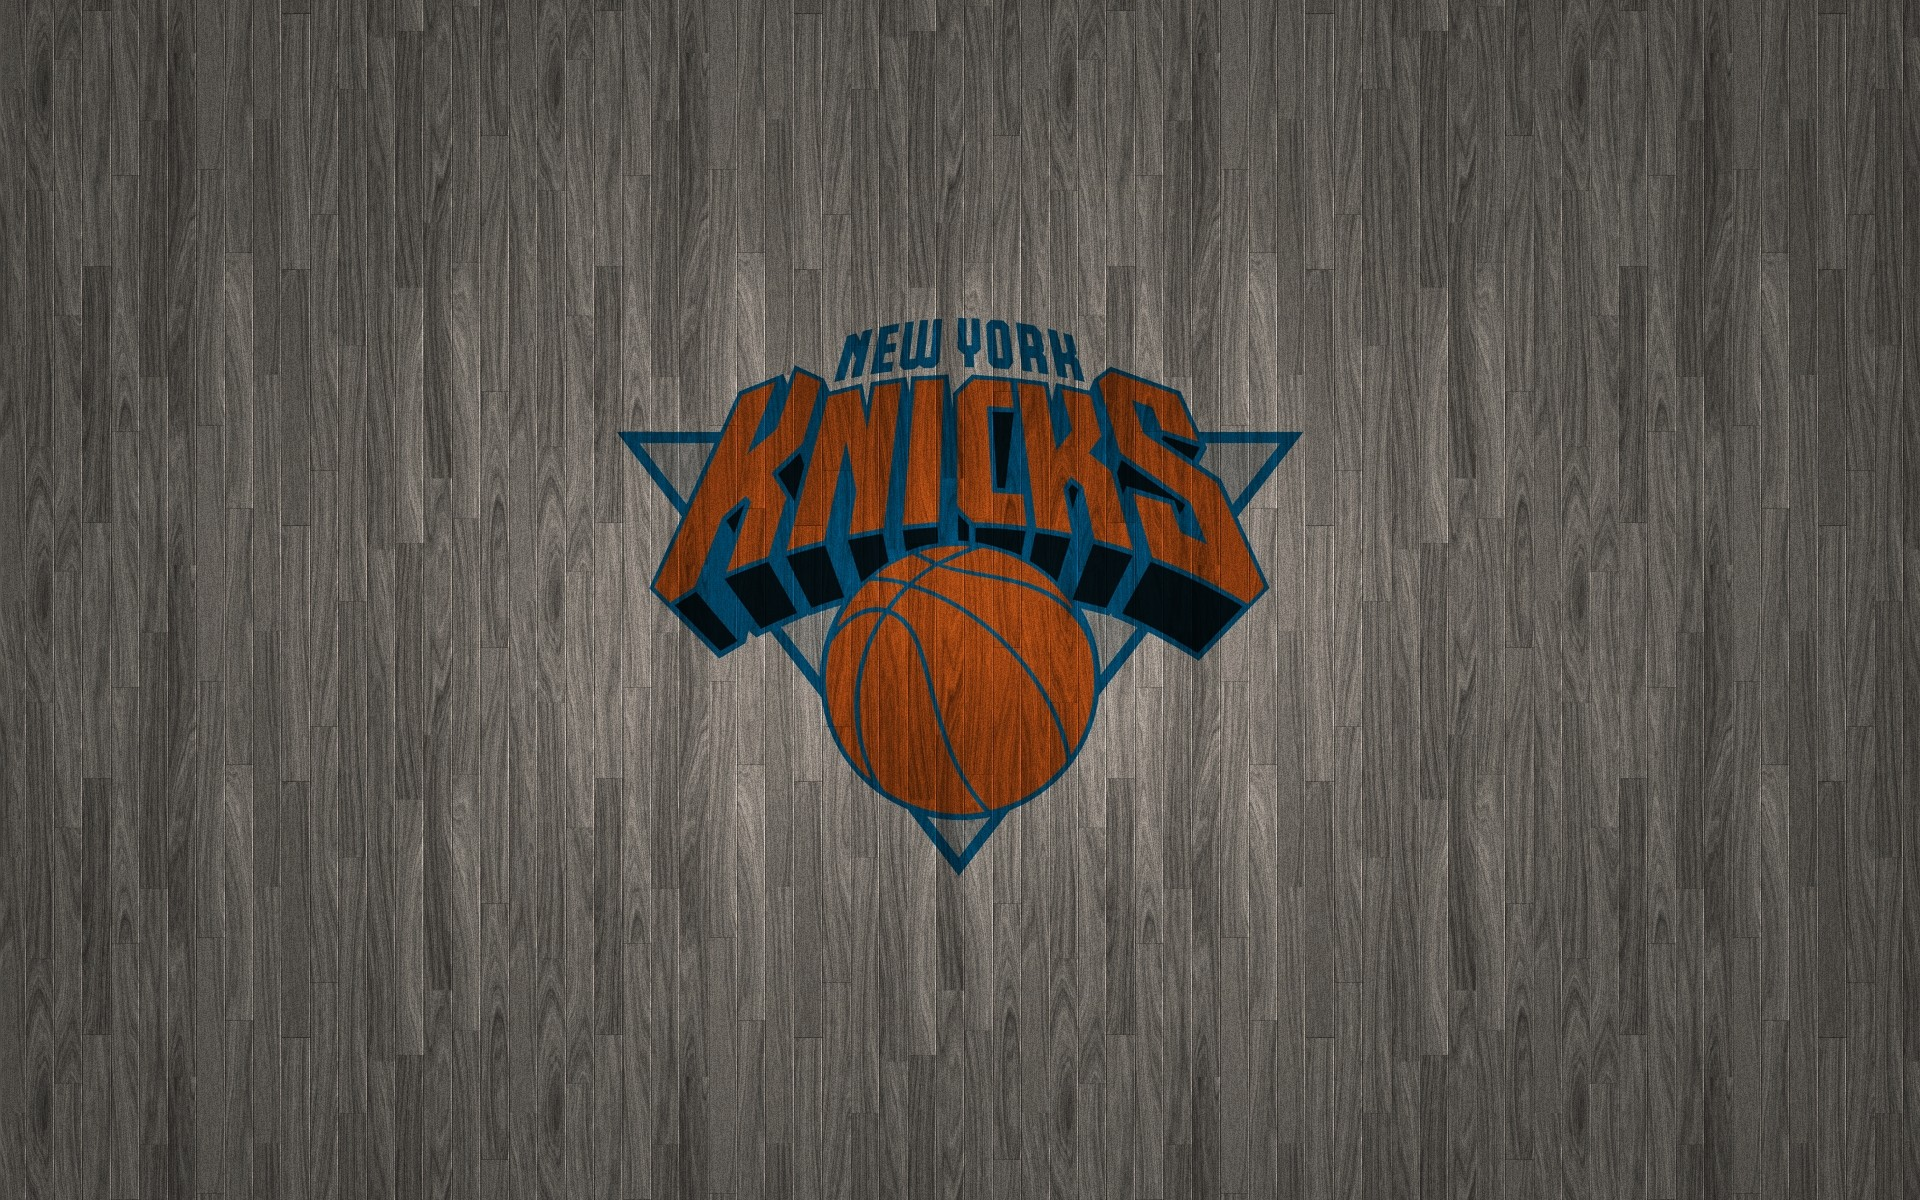 1920x1200 Sports - New York Knicks Wallpaper